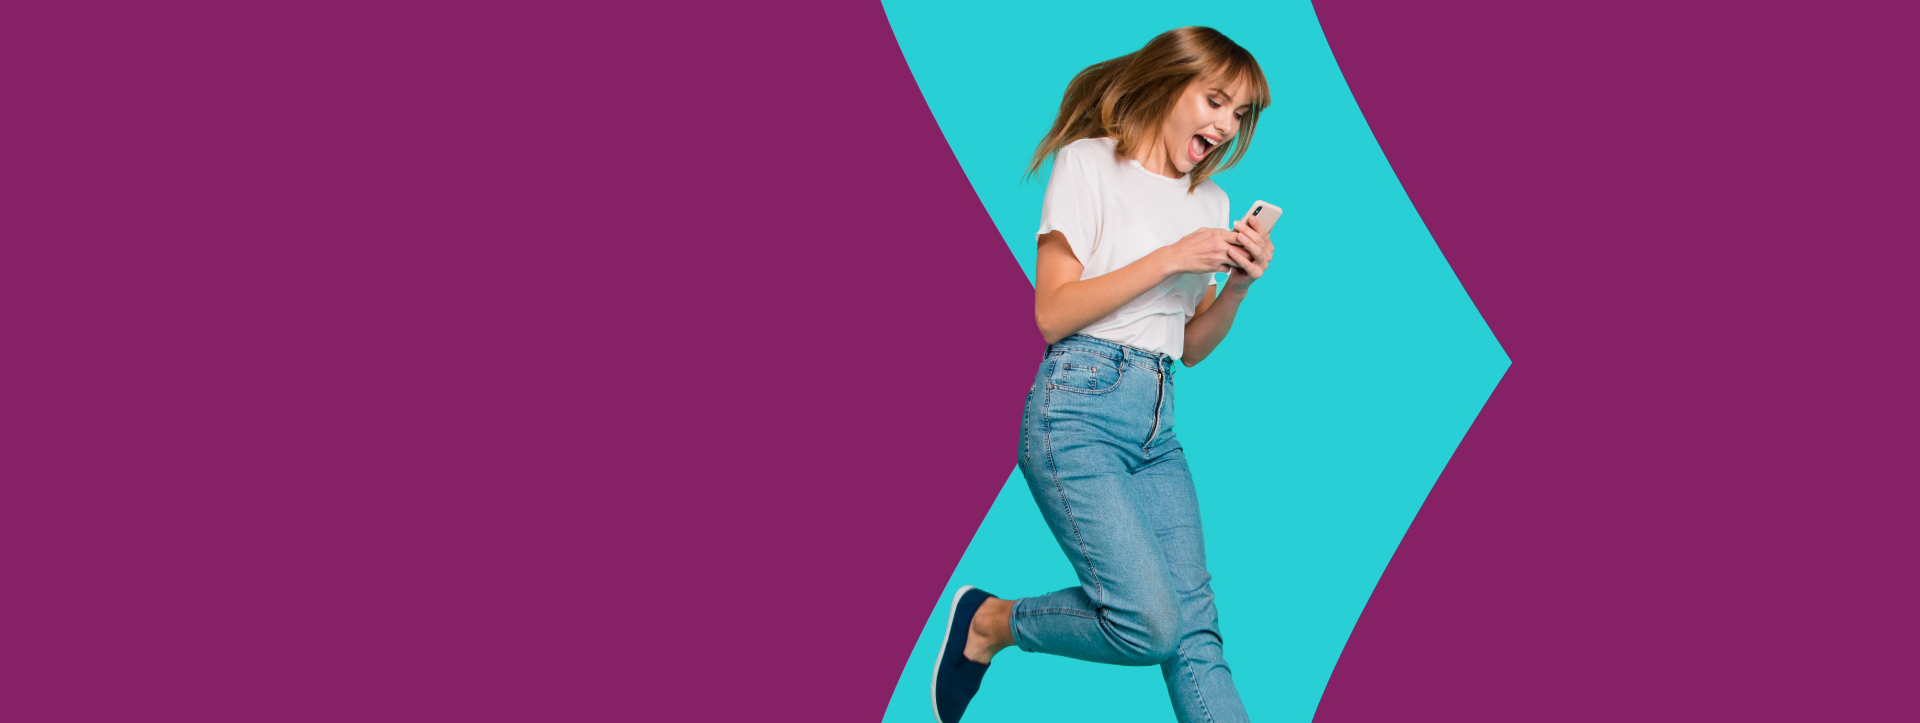 Excited lady, looking at her phone, about Skrill digital wallet benefits, brand with purple background